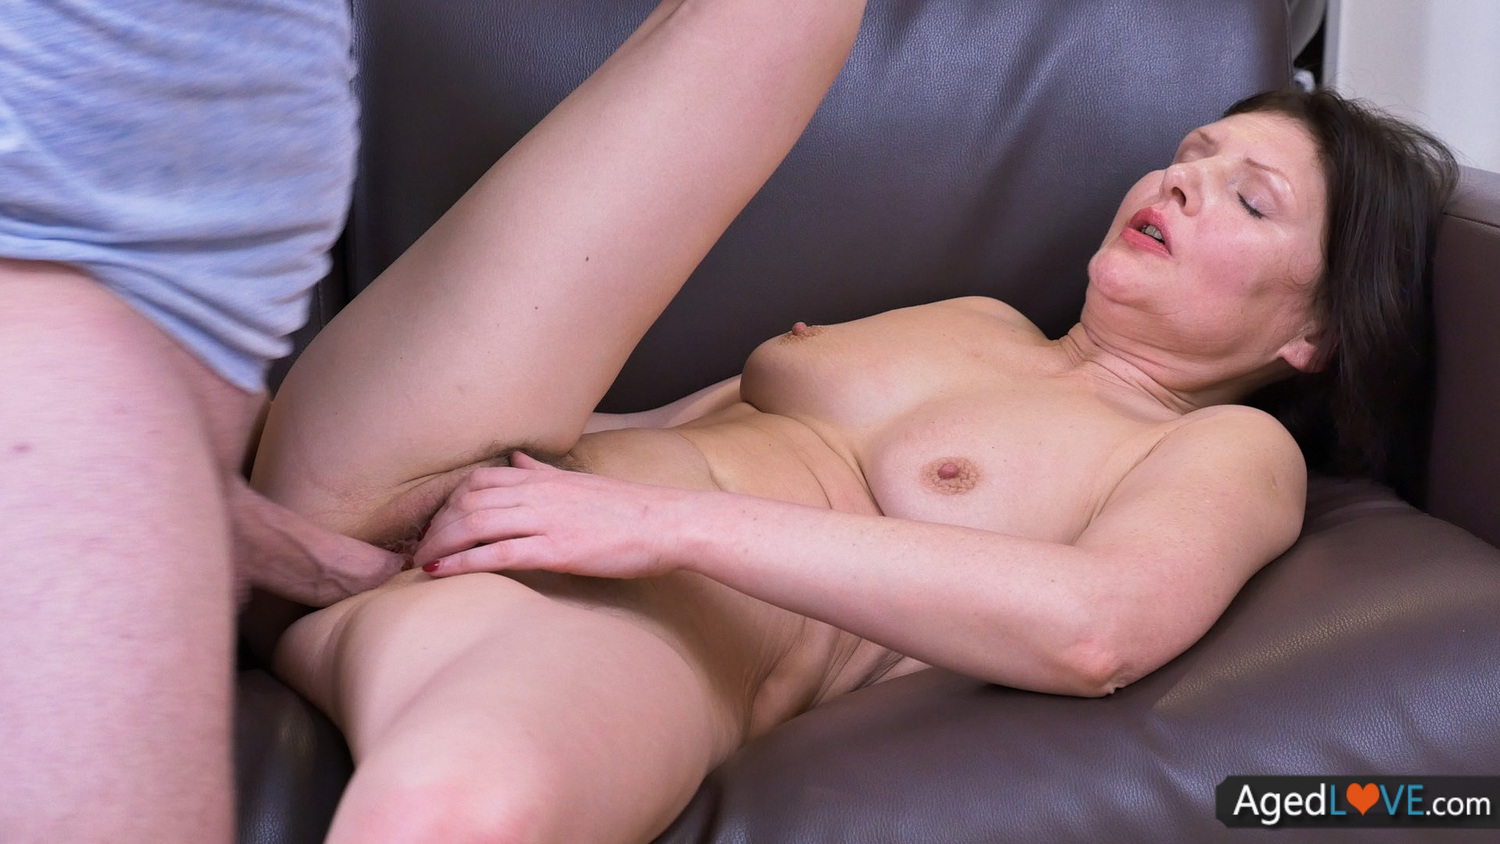 Blowjob,Matures,Old+Young,British,Grannies,Old Nanny,HD Videos,Mature Lady,Mature Hardcore,Mature Fucked,Fucked